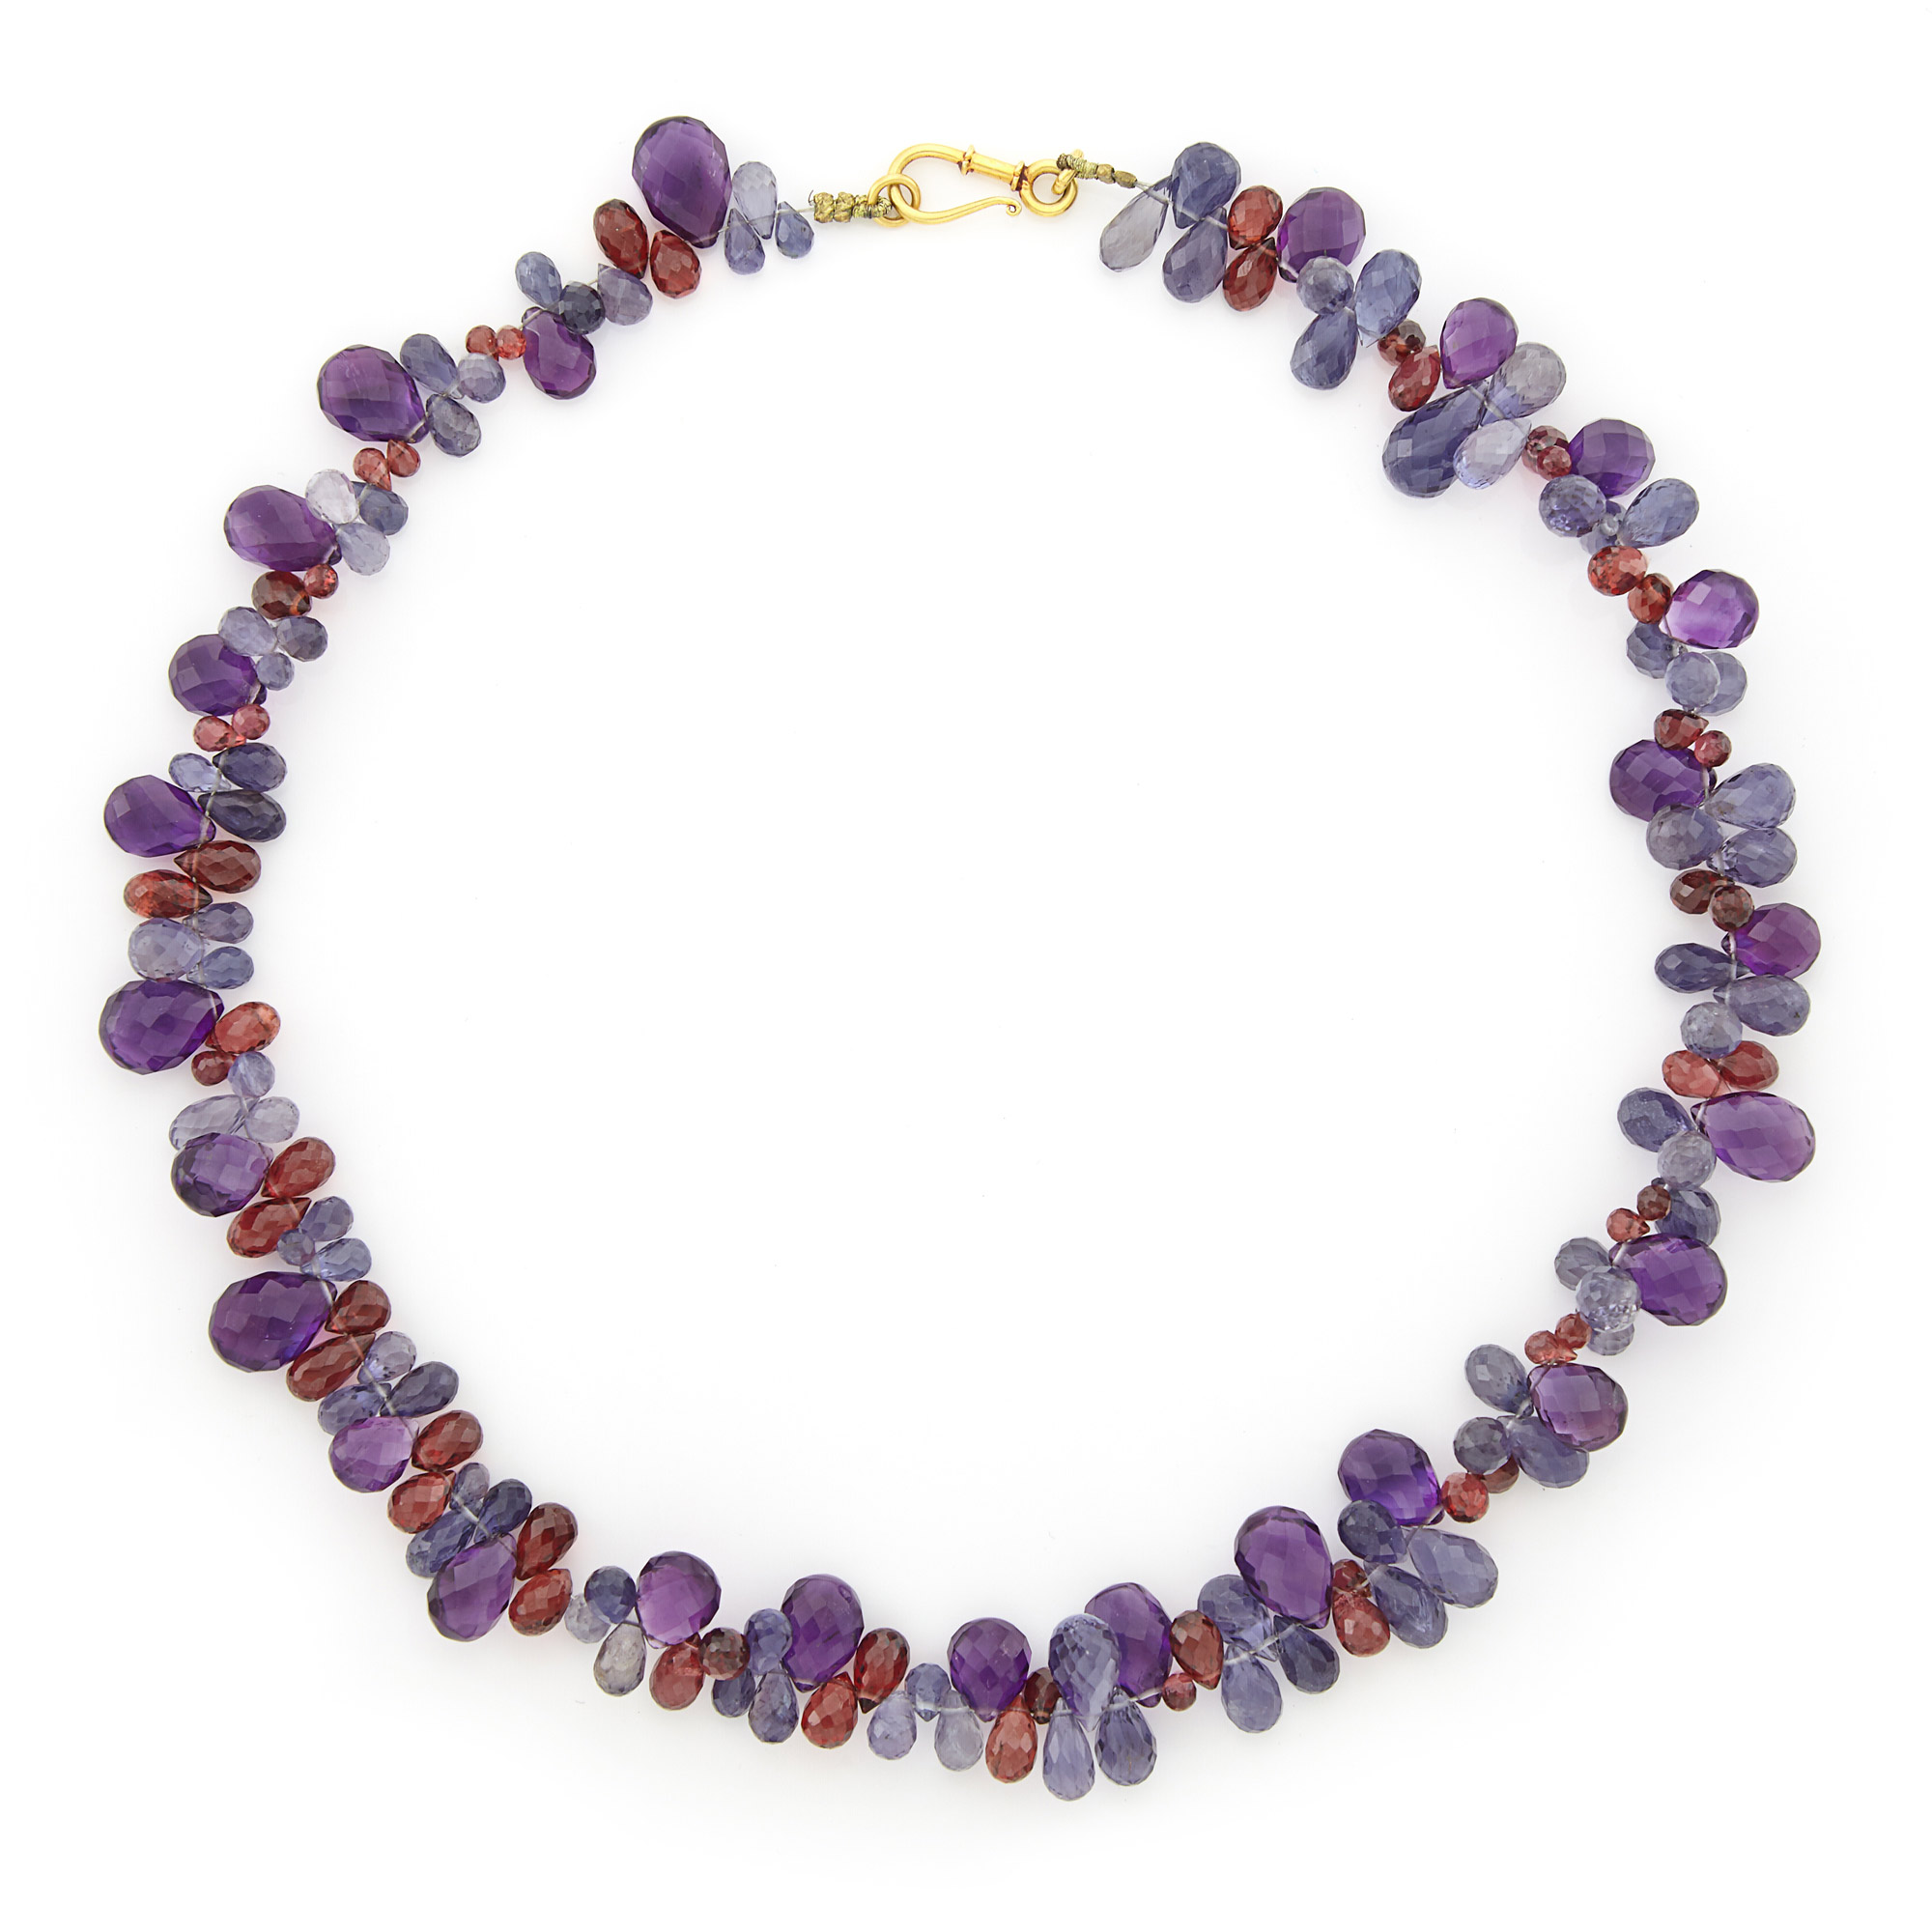 Lot image - Amethyst, Garnet, and Iolite Briolette Bead Necklace with Gold Clasp